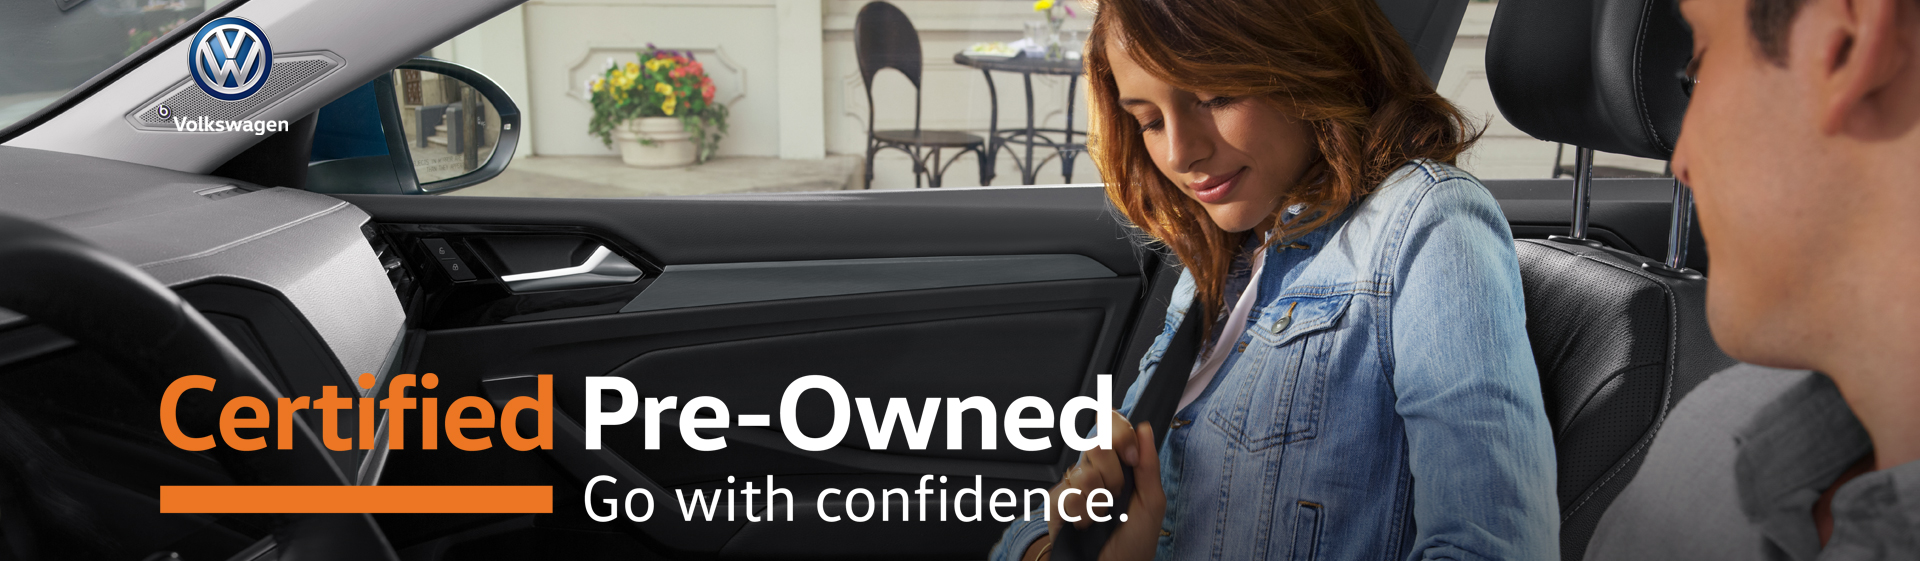 Certified Pre-Owned: Go with confidence.